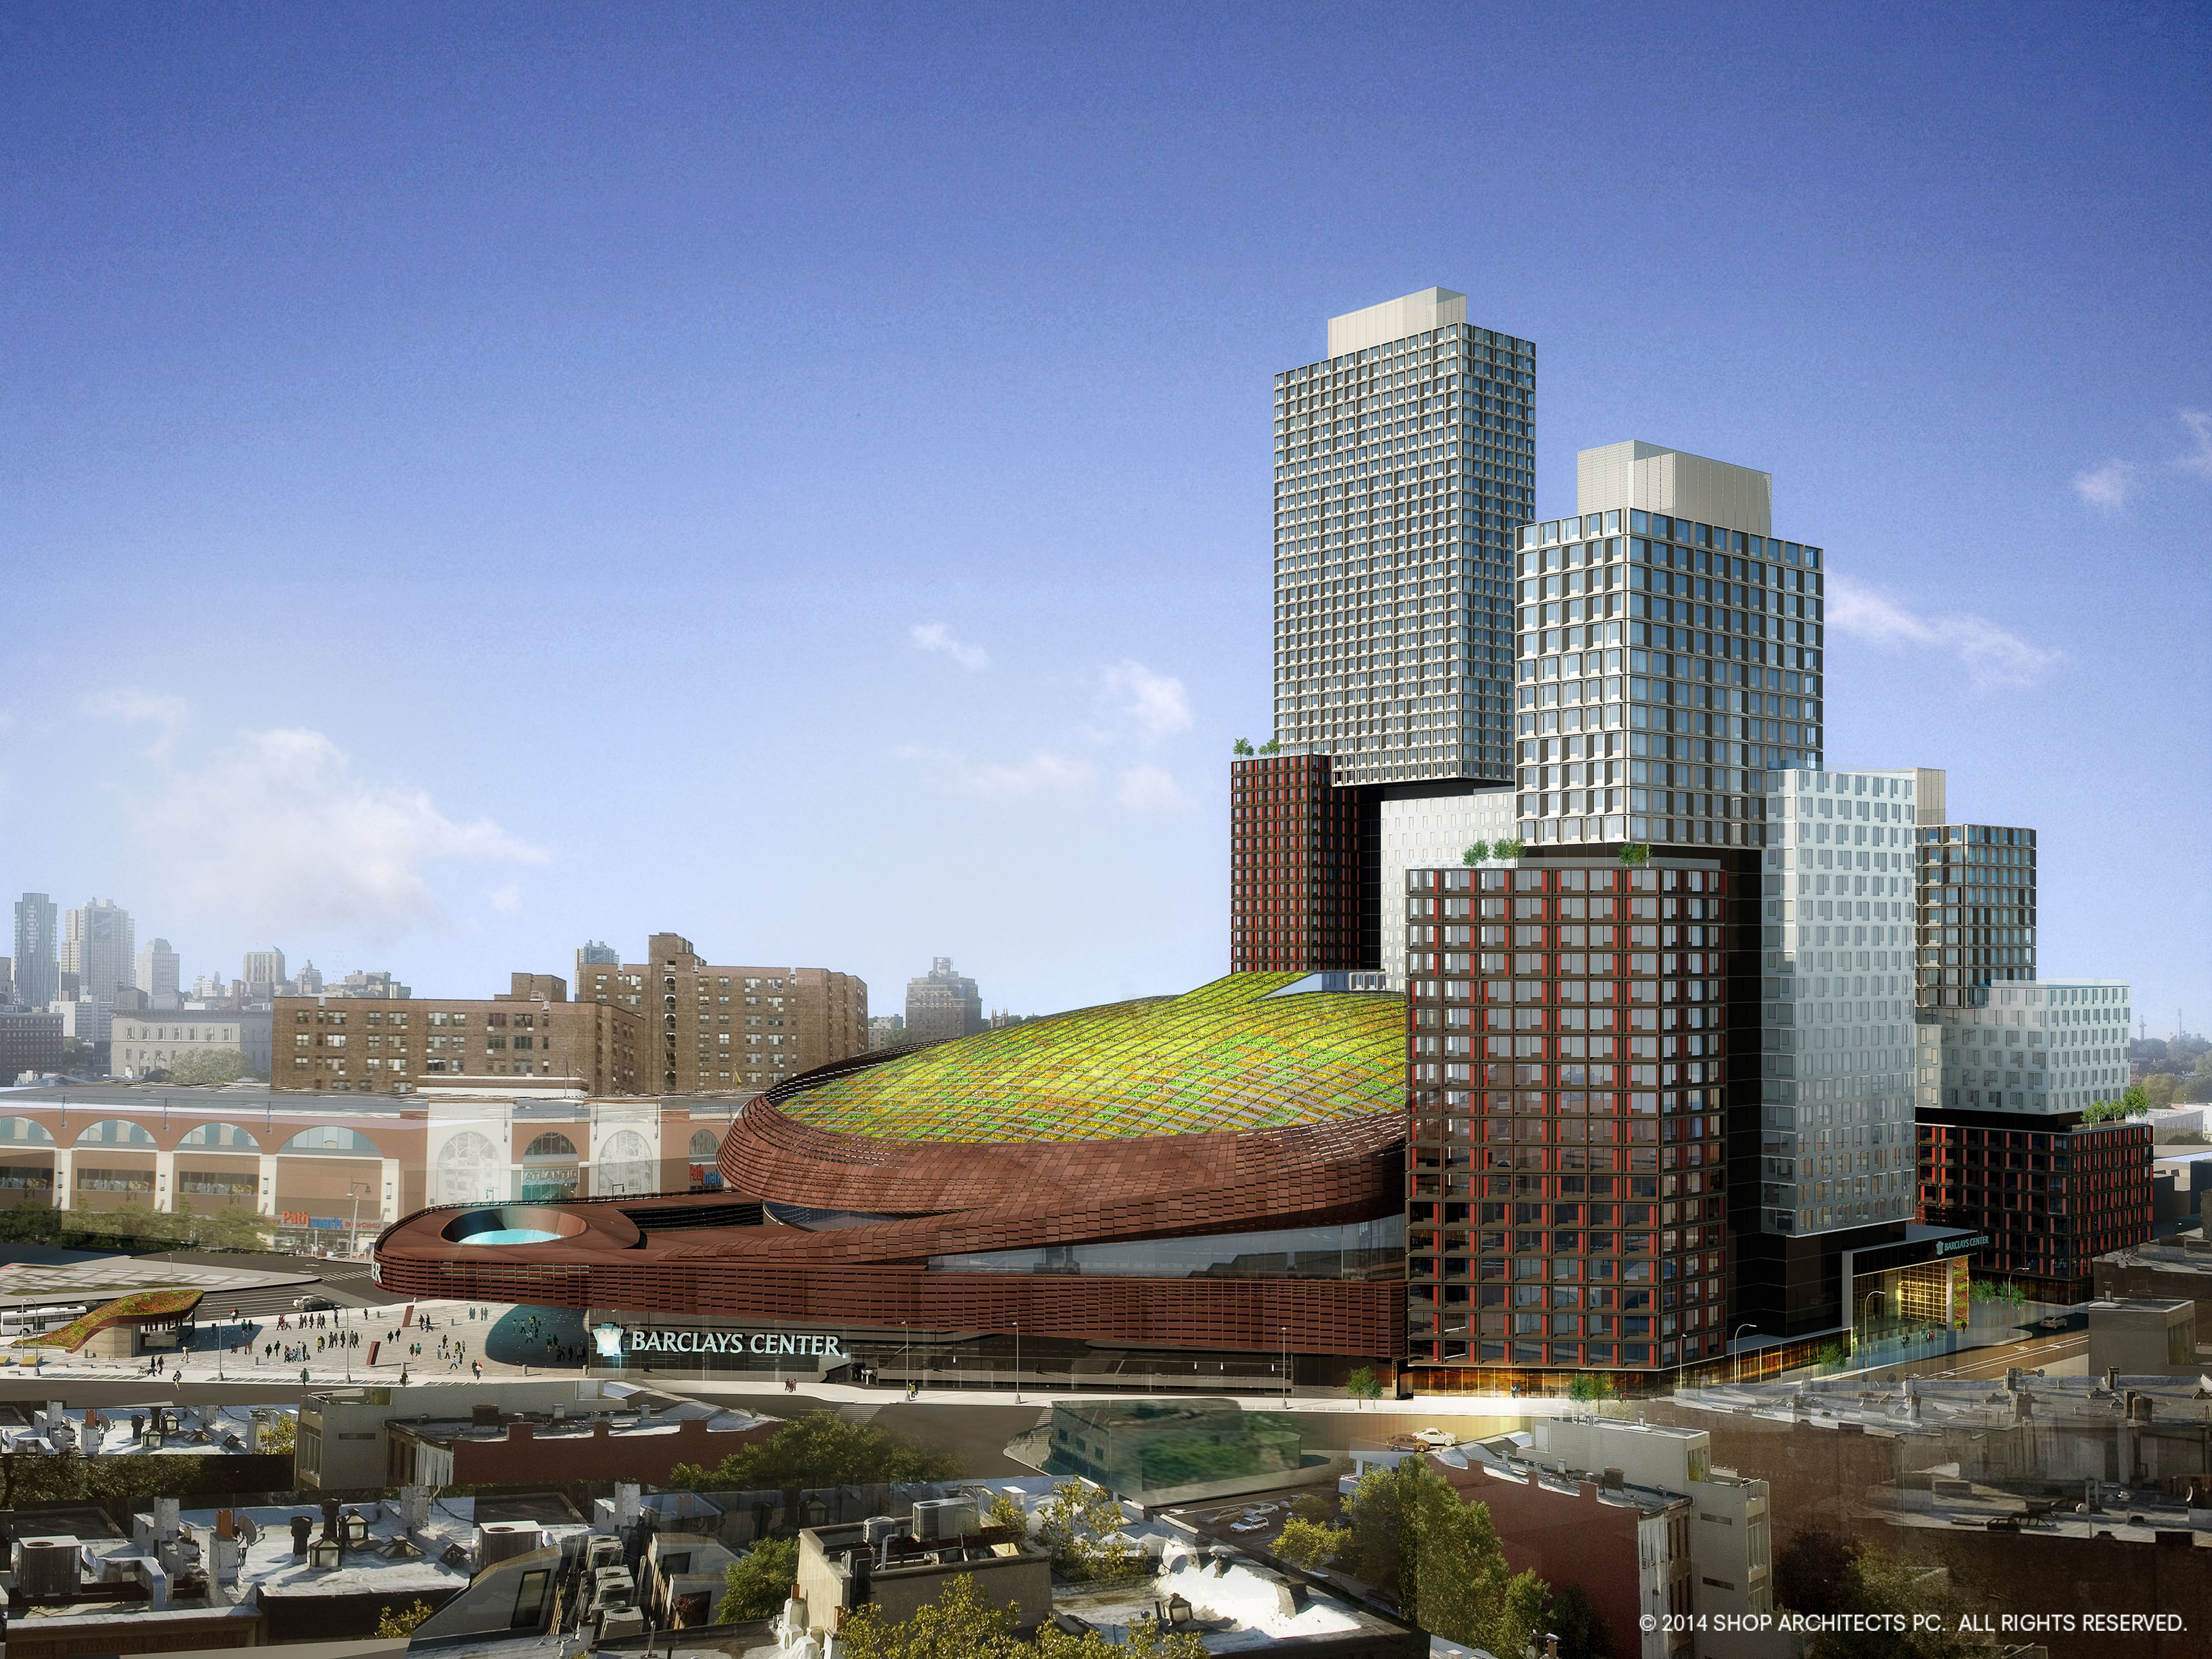 Brooklyn S Barclays Center Is Getting A 130 000 Square Foot Green Roof Green Roof Shop Architects Green Building